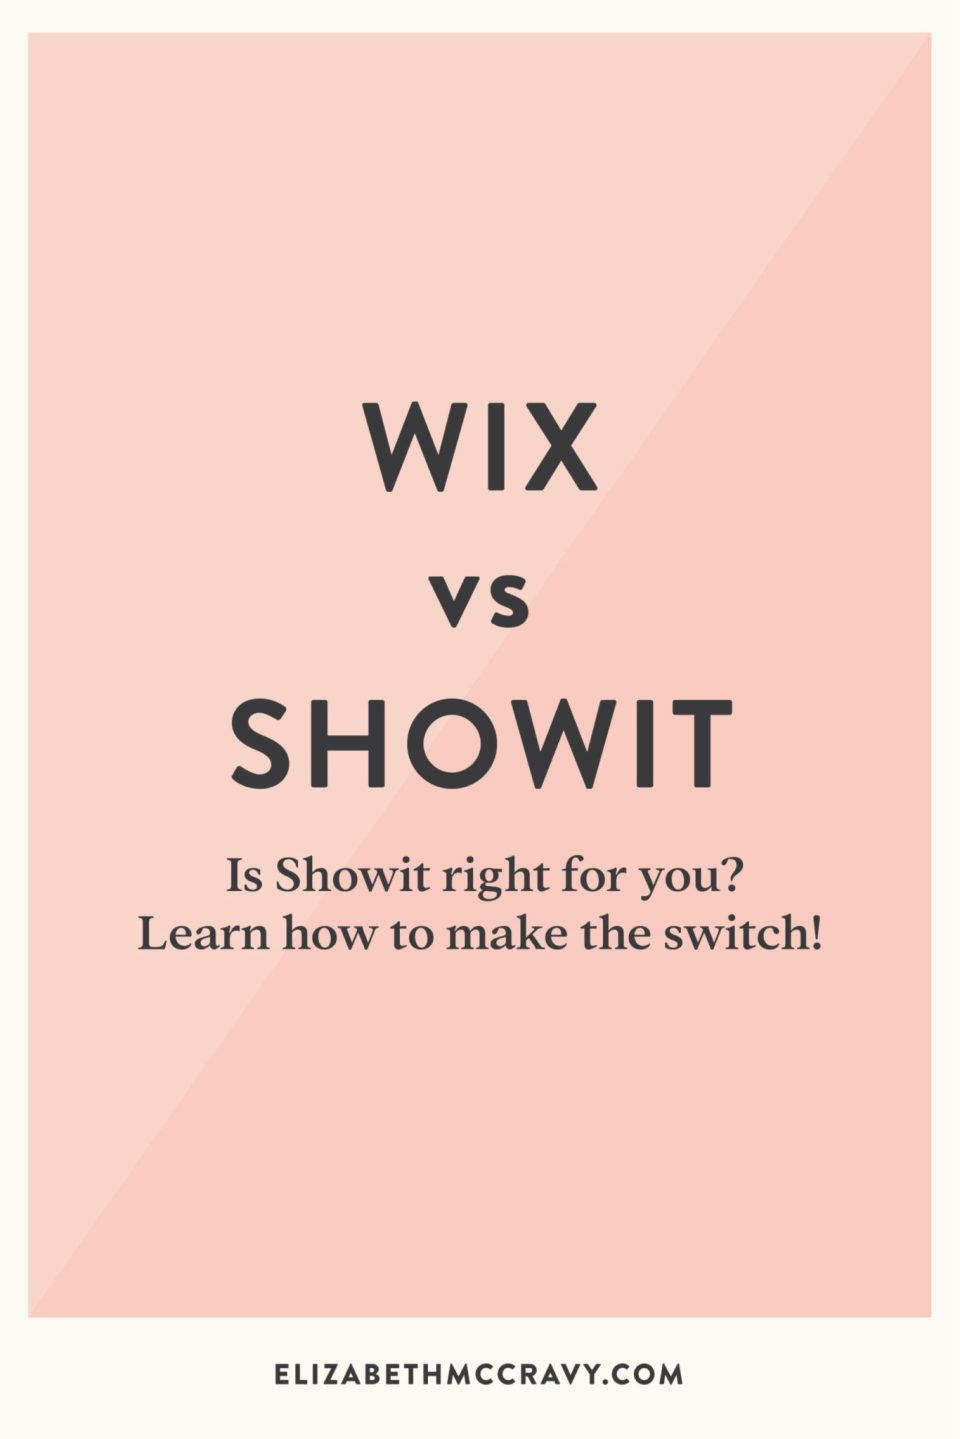 Compare Wix and Showit website platforms and see which one is right for you with Elizabeth McCravy.